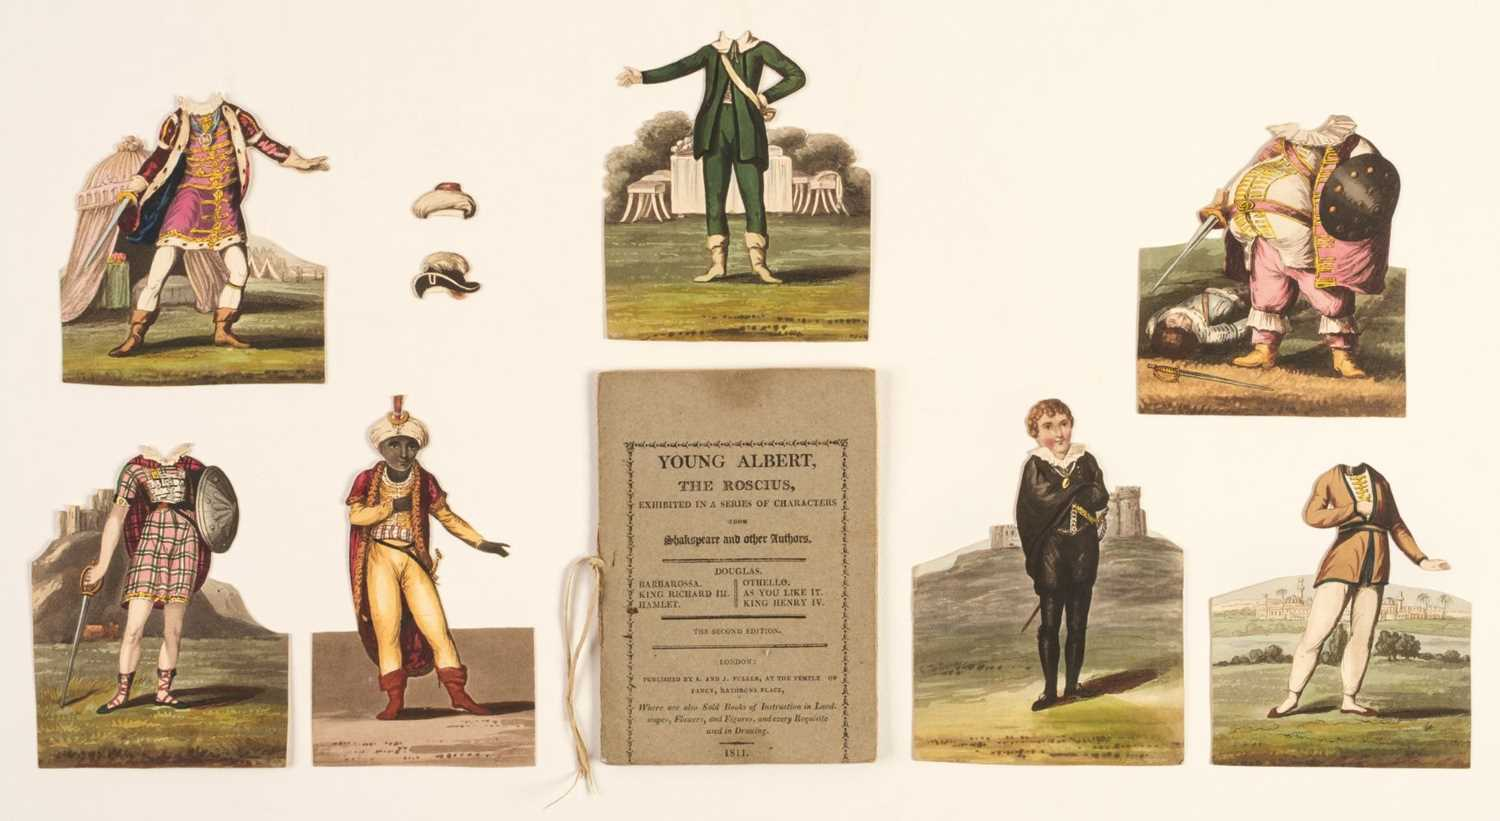 Lot 459 - Paper Doll Book. Young Albert, the Roscius, 2nd edition, 1811